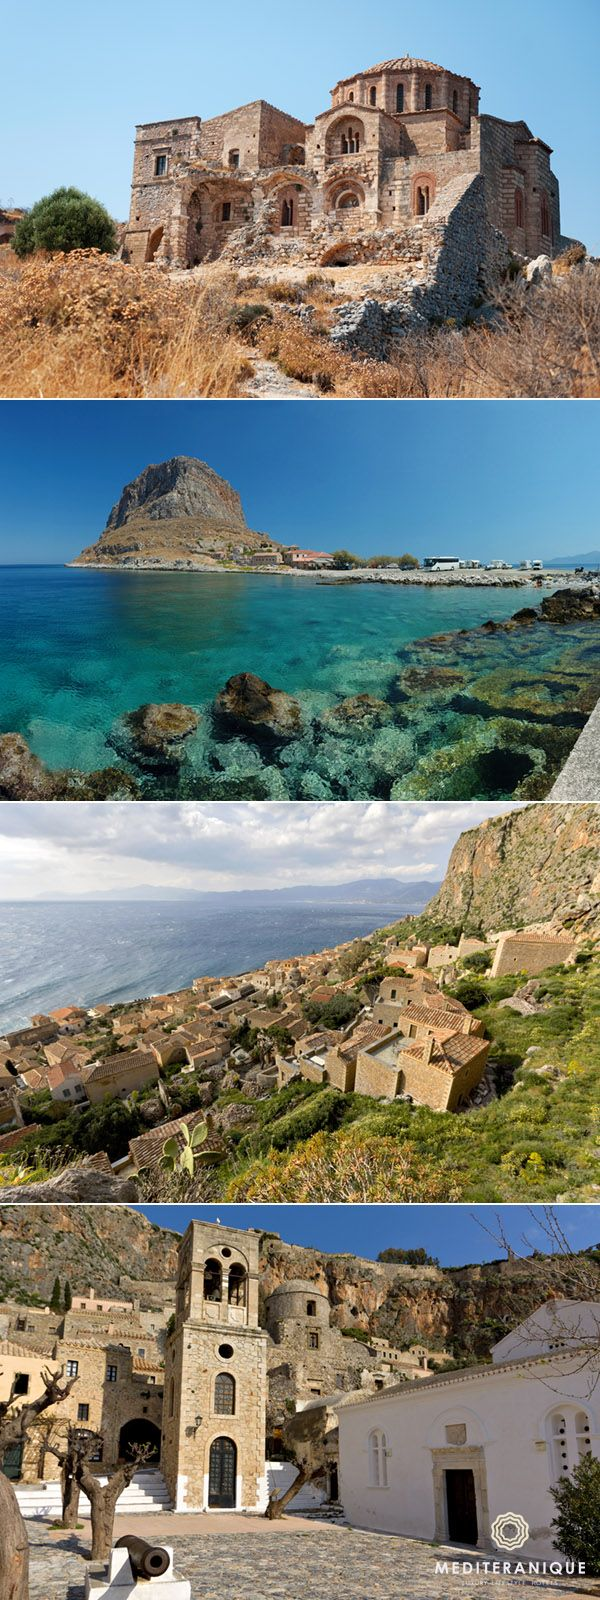 Monemvasia, Greece: an amazingly beautiful and historic fortress just off the mainland of the Peloponnese.